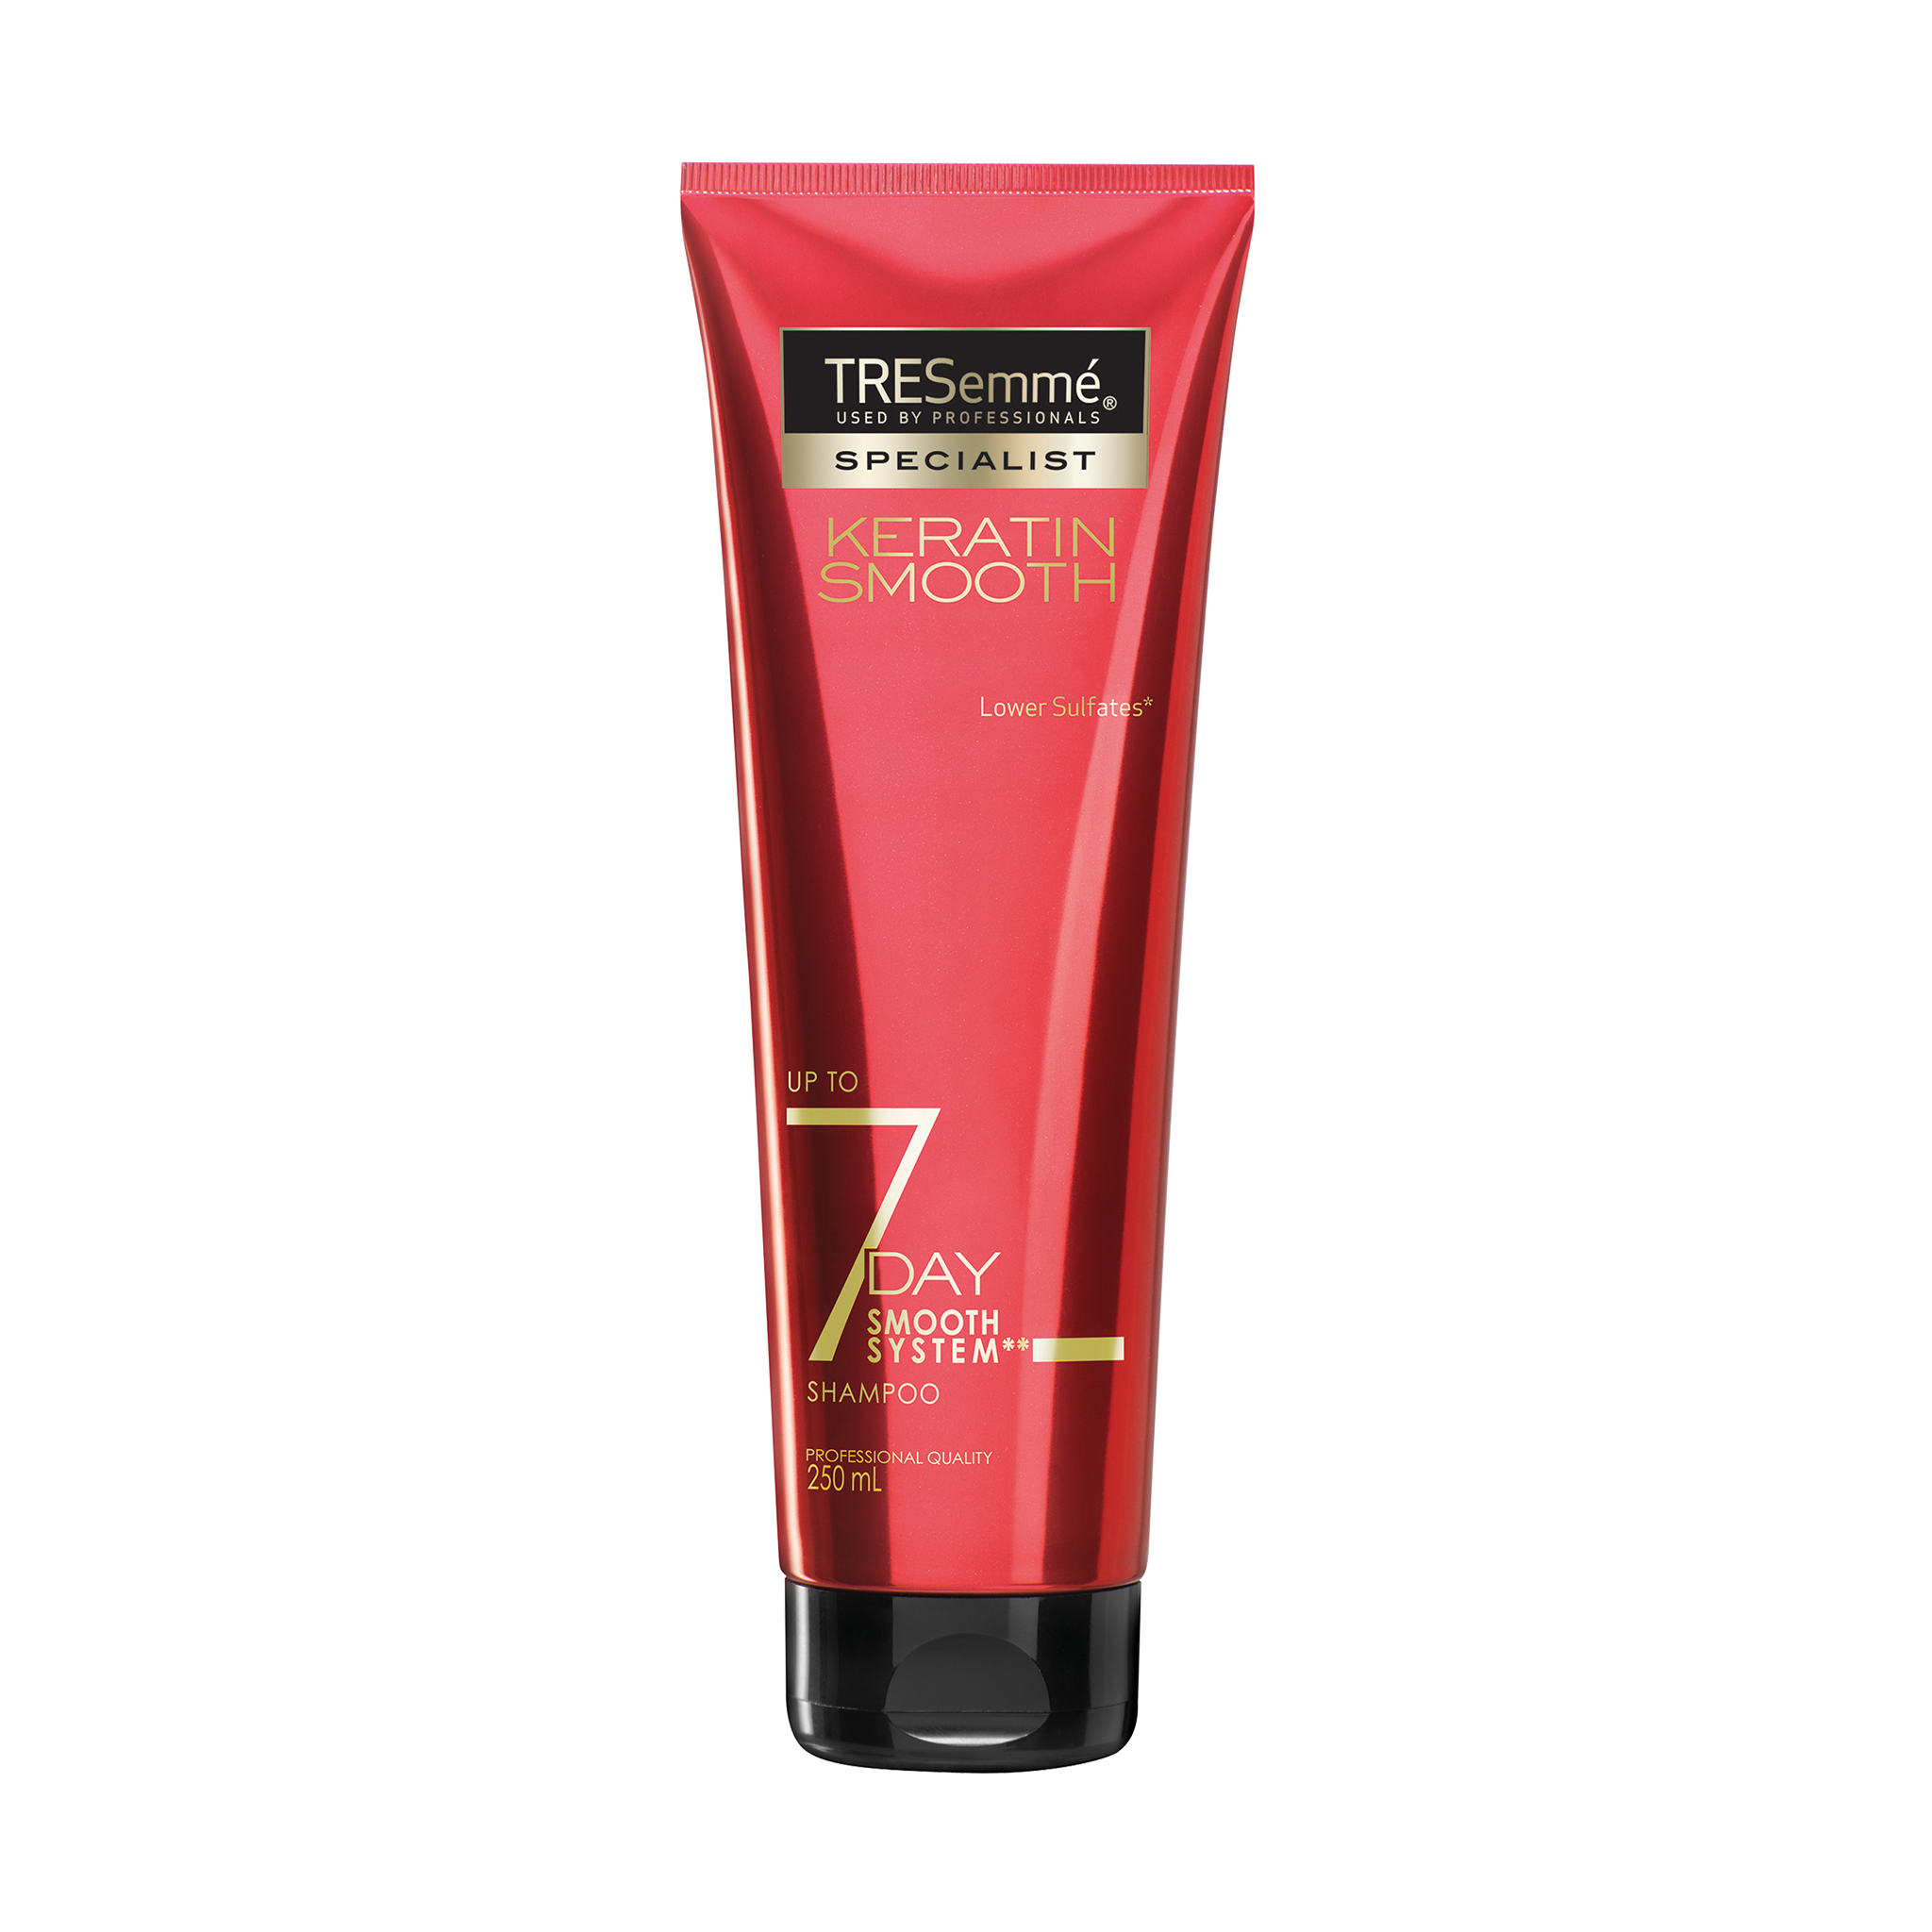 tresemme 7 day smooth